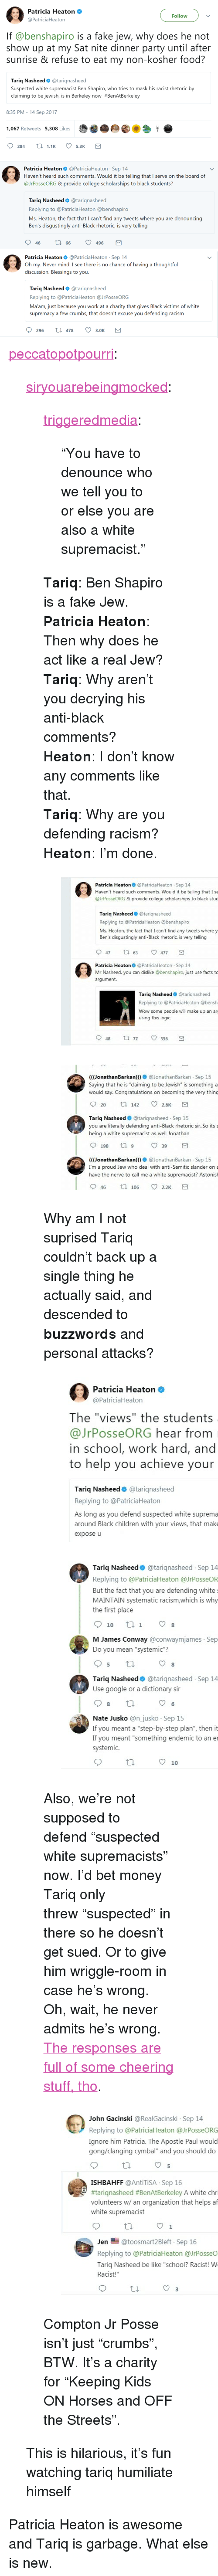 """humiliate: Patricia Heaton  @PatriciaHeaton  Follow  If @benshapiro is a fake jew, why does he not  show up at my Sat nite dinner party until after  sunrise & refuse to eat my non-kosher food?  Tariq Nasheed@tariqnasheed  Suspected white supremacist Ben Shapiro, who tries to mask his racist rhetoric by  claiming to be jewish, is in Berkeley  now #BenAtBerkeley  8:35 PM - 14 Sep 2017  1,067 Retweets 5,308 Likes  284 1.1 5.3K   Patricia Heaton@PatriciaHeaton Sep 14  Haven't heard such comments. Would it be telling that I serve on the board of  @JrPosseORG & provide college scholarships to black students?  Tariq Nasheed@tariqnasheed  Replying to @PatriciaHeaton @benshapiro  Ms. Heaton, the fact that I can't find any tweets where you are denouncing  Ben's disgustingly anti-Black rhetoric, is very telling  46 tl 66 496   Patricia Heaton @PatriciaHeaton - Sep 14  Oh my. Never mind. I see there is no chance of having a thoughtful  discussion. Blessings to you.  Tariq Nasheed@tariqnasheed  Replying to @PatriciaHeaton @JrPosseORG  Ma'am, just because you work at a charity that gives Black victims of white  supremacy a few crumbs, that doesn't excuse you defending racism  296  th 478 3.0K <p><a href=""""http://peccatopotpourri.tumblr.com/post/165603731757/siryouarebeingmocked-triggeredmedia-you-have"""" class=""""tumblr_blog"""">peccatopotpourri</a>:</p>  <blockquote><p><a href=""""http://siryouarebeingmocked.tumblr.com/post/165601702155/triggeredmedia-you-have-to-denounce-who-we-tell"""" class=""""tumblr_blog"""">siryouarebeingmocked</a>:</p><blockquote> <p><a href=""""https://triggeredmedia.tumblr.com/post/165476242292/you-have-to-denounce-who-we-tell-you-to-or-else"""" class=""""tumblr_blog"""">triggeredmedia</a>:</p> <blockquote><p>""""You have to denounce who we tell you to or else you are also a white supremacist.""""<br/></p></blockquote> <p><b>Tariq</b>: Ben Shapiro is a fake Jew.<br/><b>Patricia Heaton</b>: Then why does he act like a real Jew?<br/><b>Tariq</b>: Why aren't you decrying his anti-black comment"""